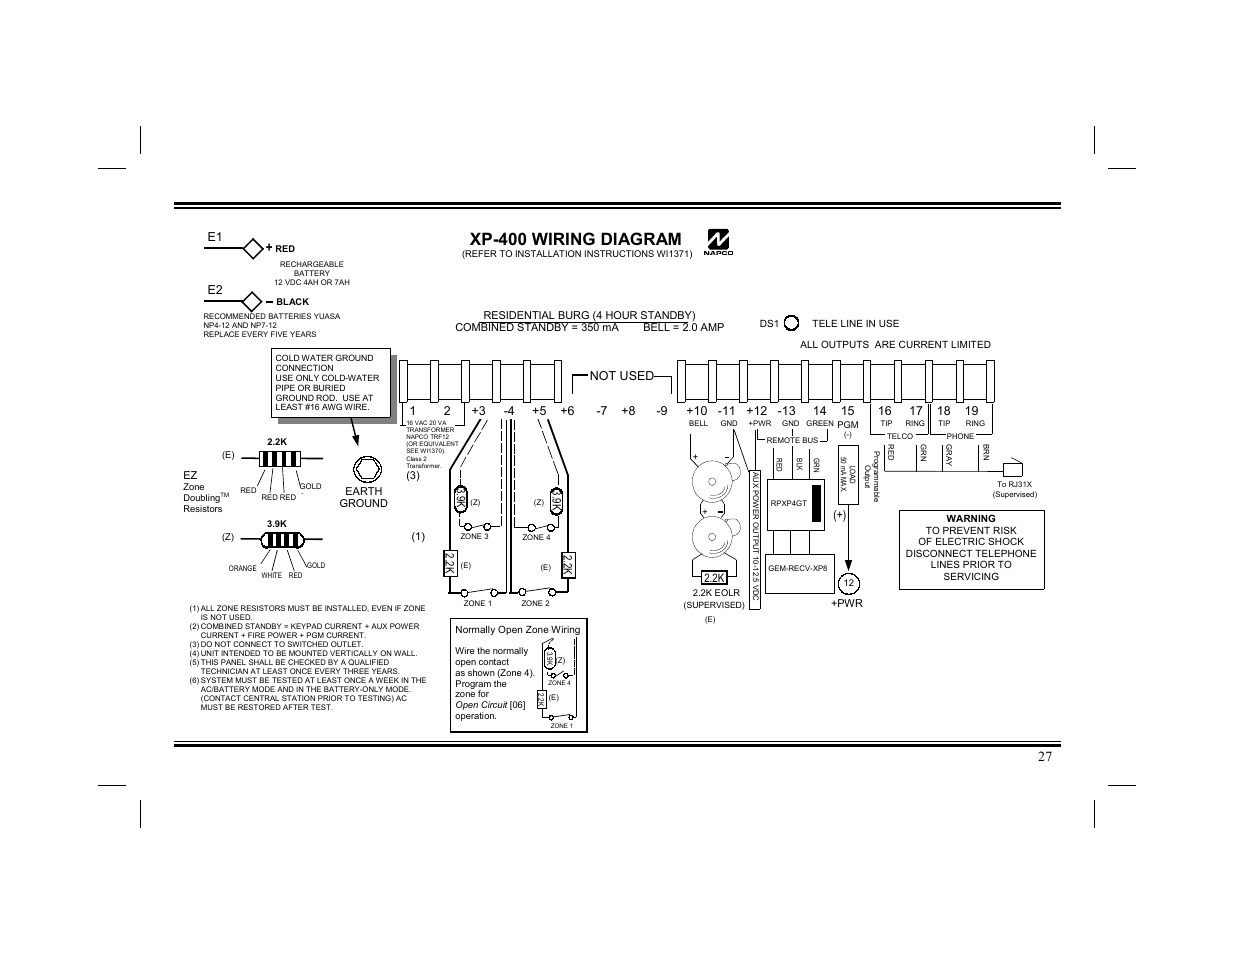 napco security technologies xp 400 page27 napco wiring diagram wiring diagrams napco 801 installation manual at bakdesigns.co